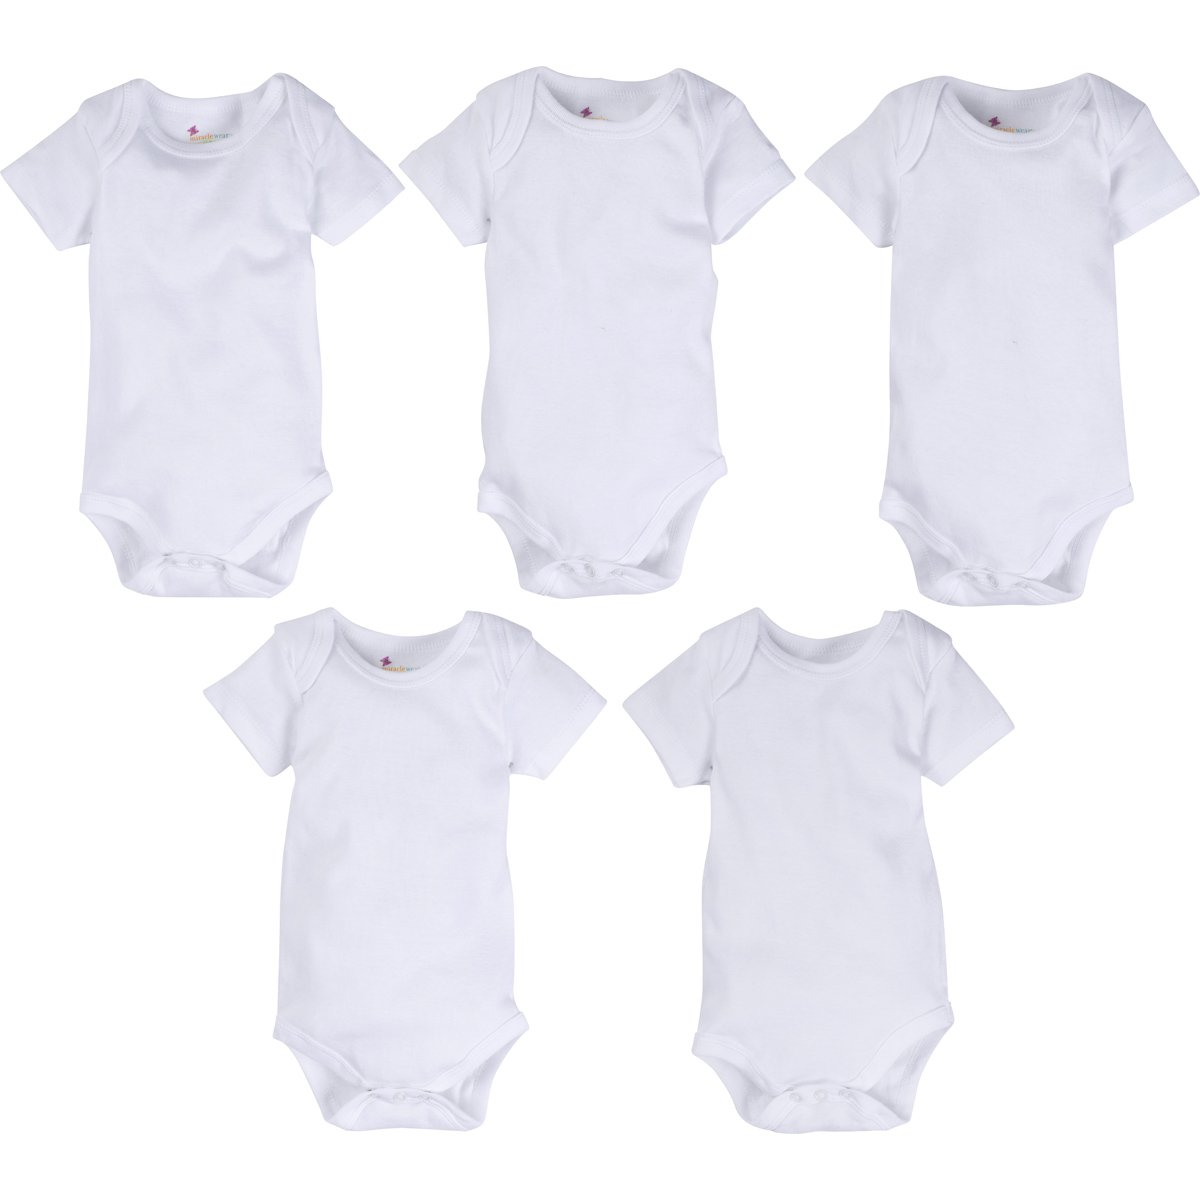 MiracleWear 5-Pack Neutral Unisex Solid White Infant Low Cost Bodysuit/Rompers for Boy Girl Baby